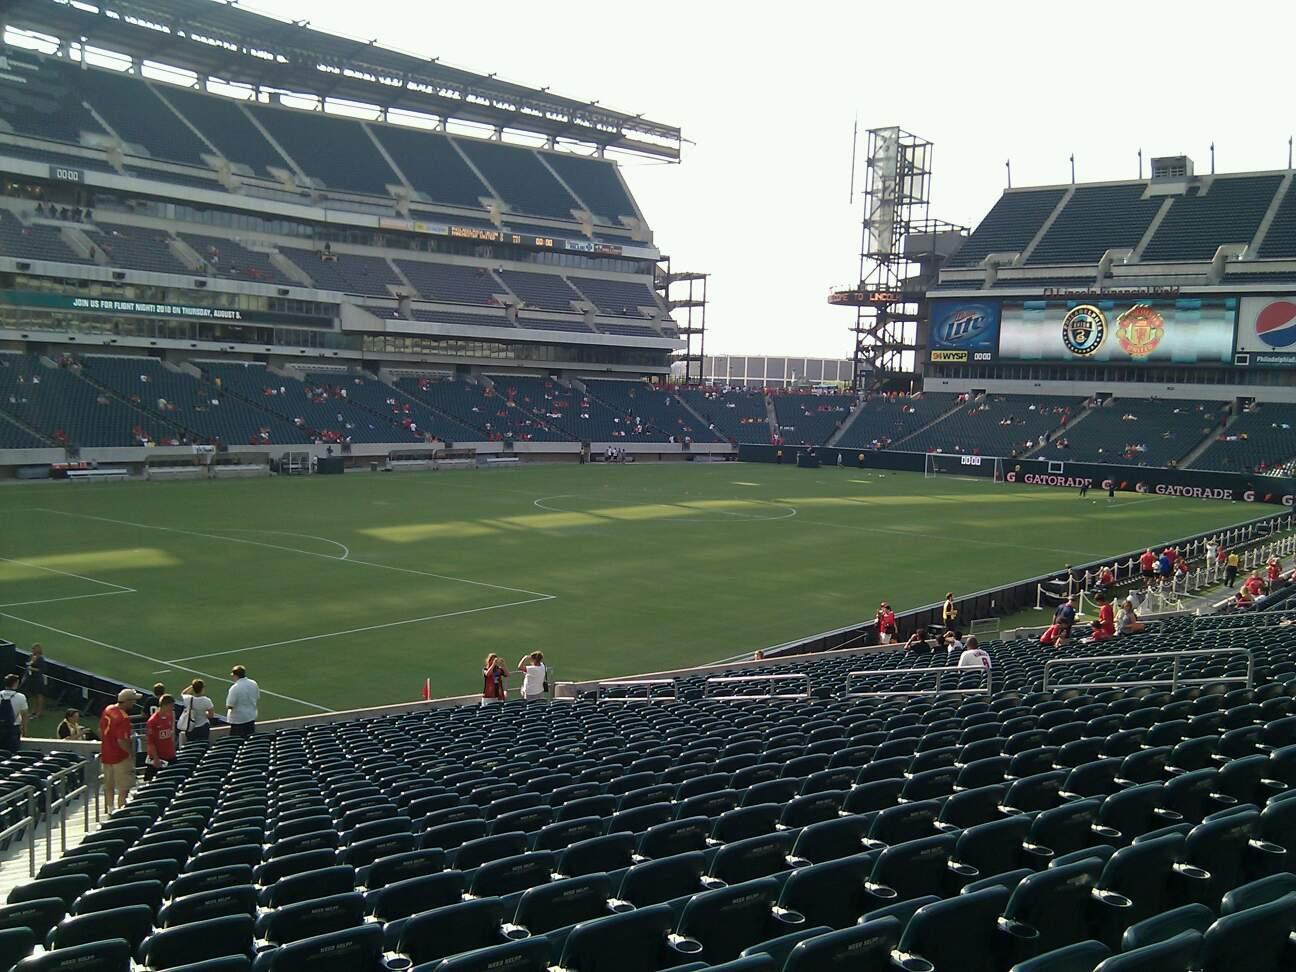 Lincoln Financial Field Secção 115 Fila 27 Lugar 25